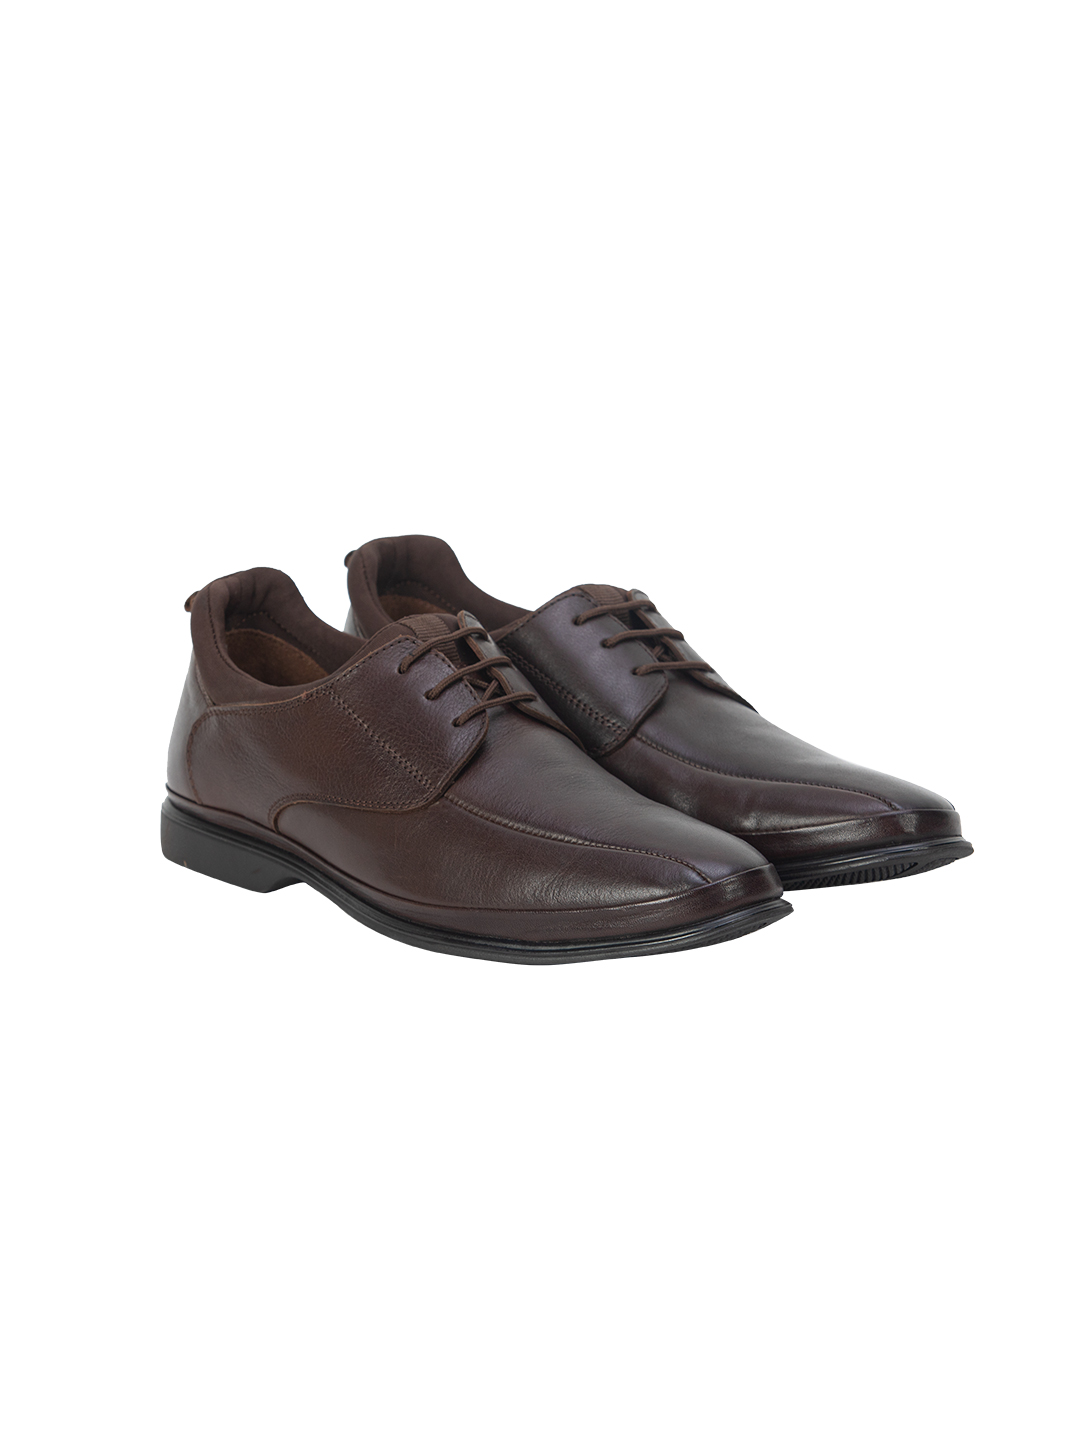 Buy Von Wellx Germany Comfort Brown Ryker Shoes Online in Madhya Pradesh